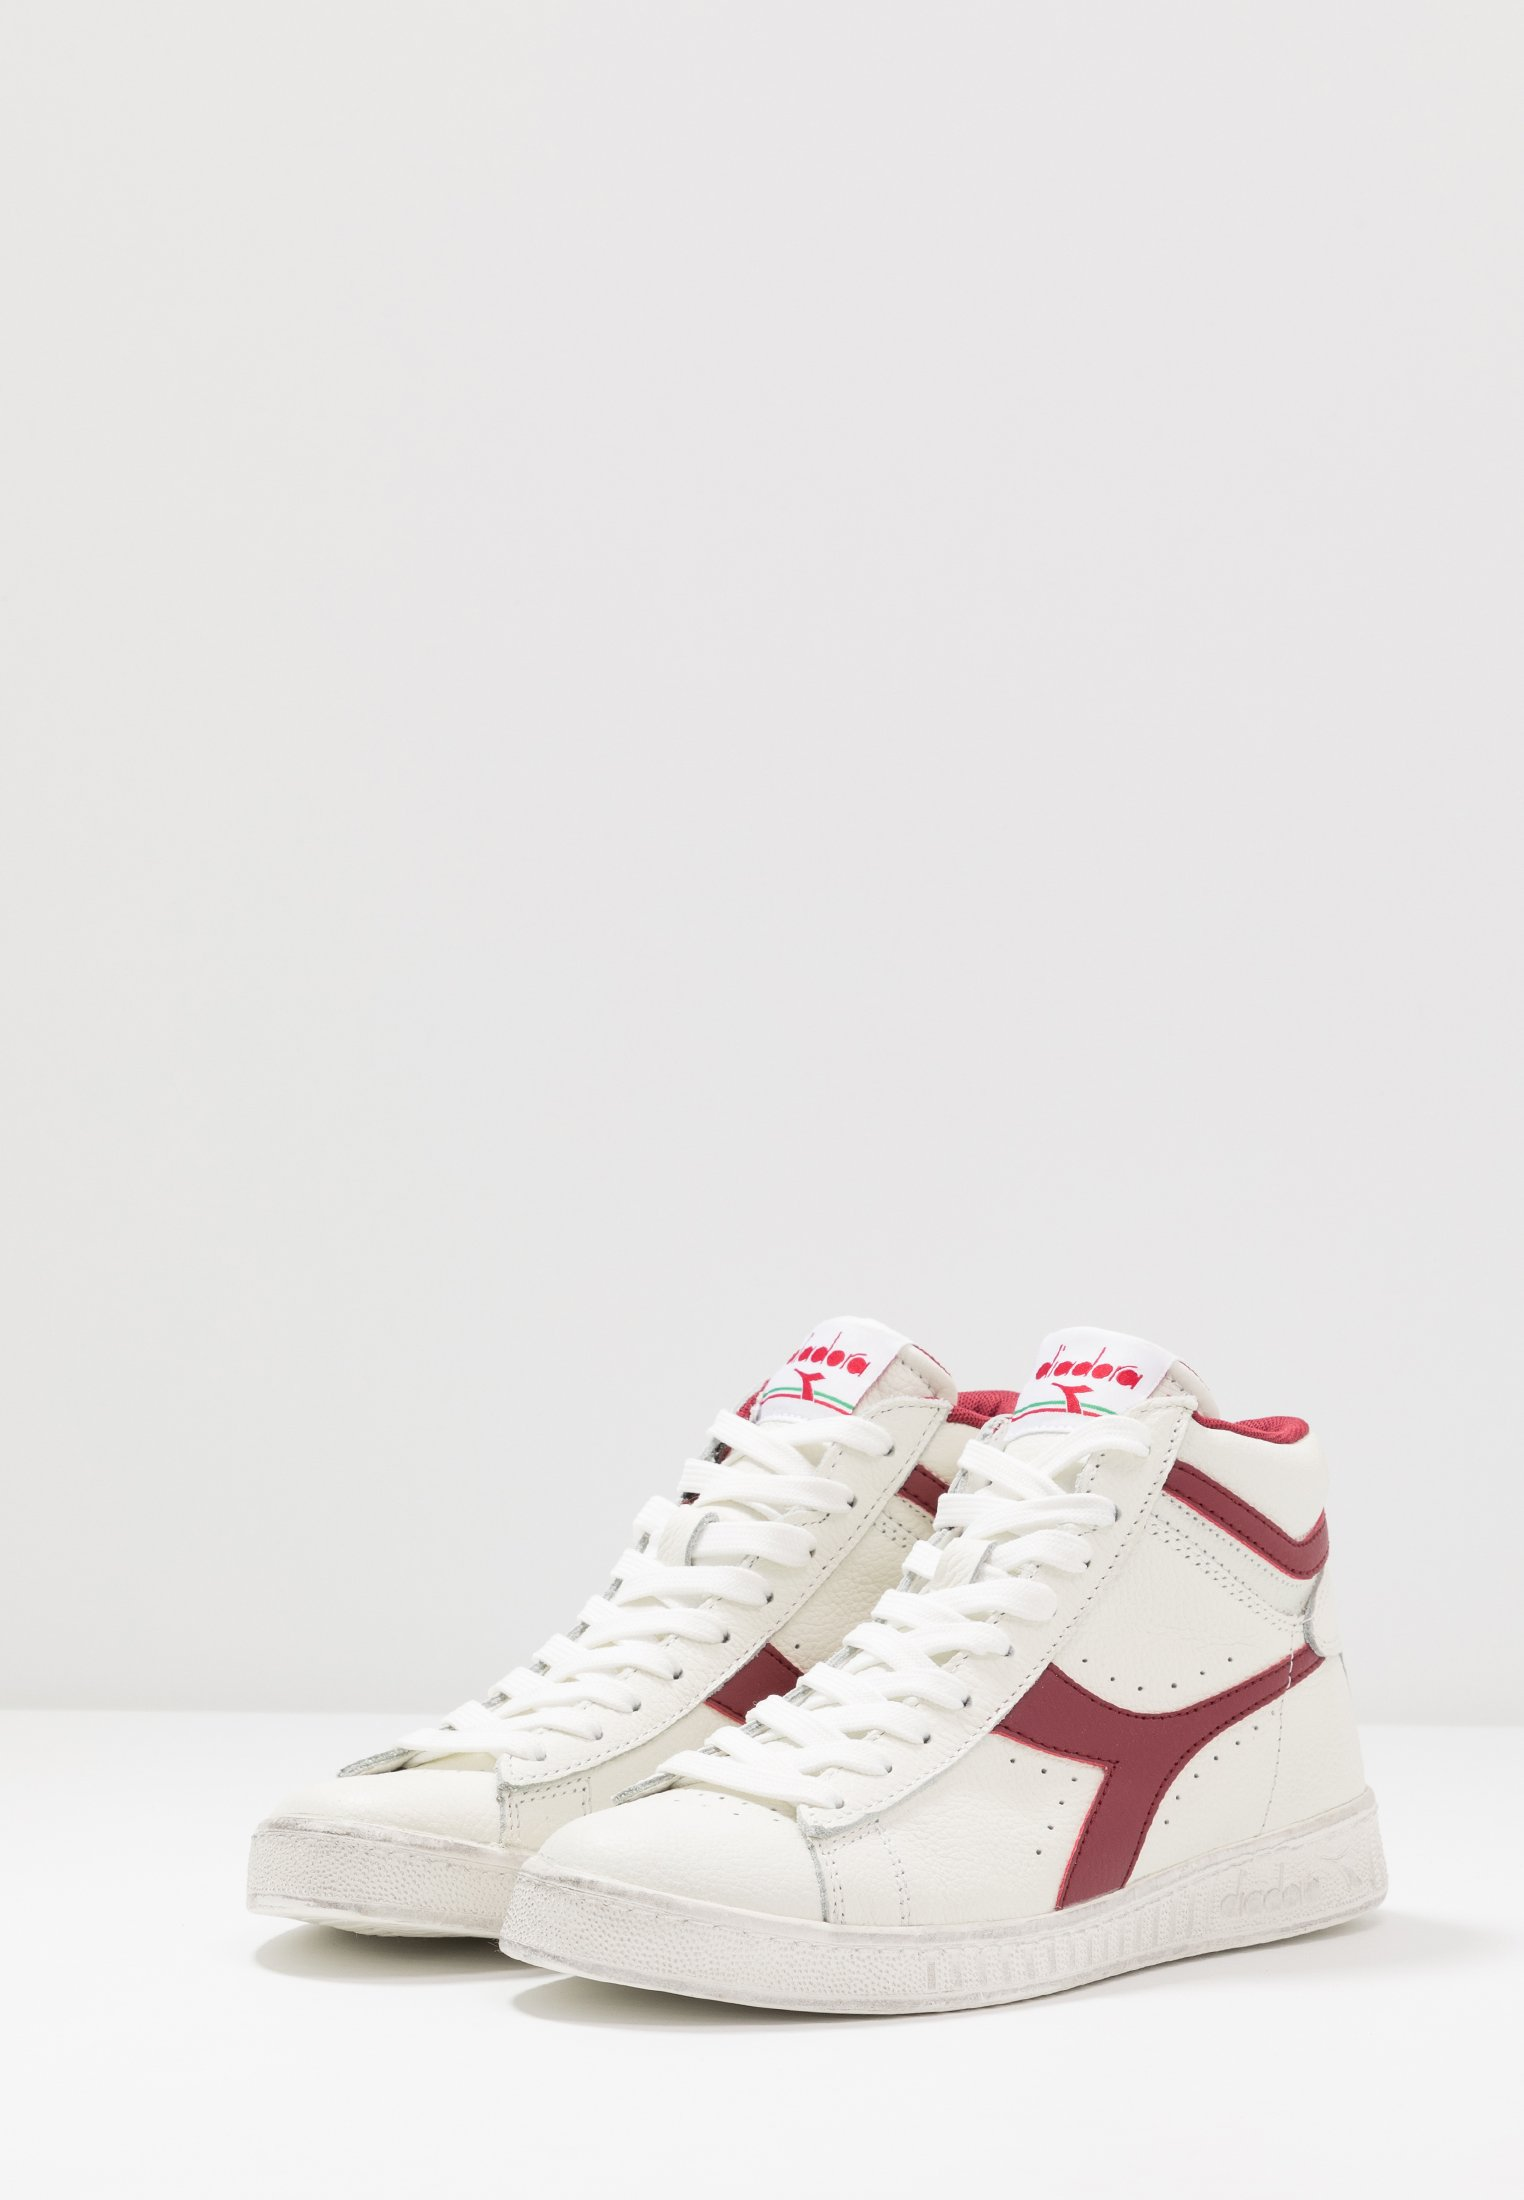 Diadora GAME WAXED - Sneaker high - white/red pepper/weiß - Herrenschuhe z3dll